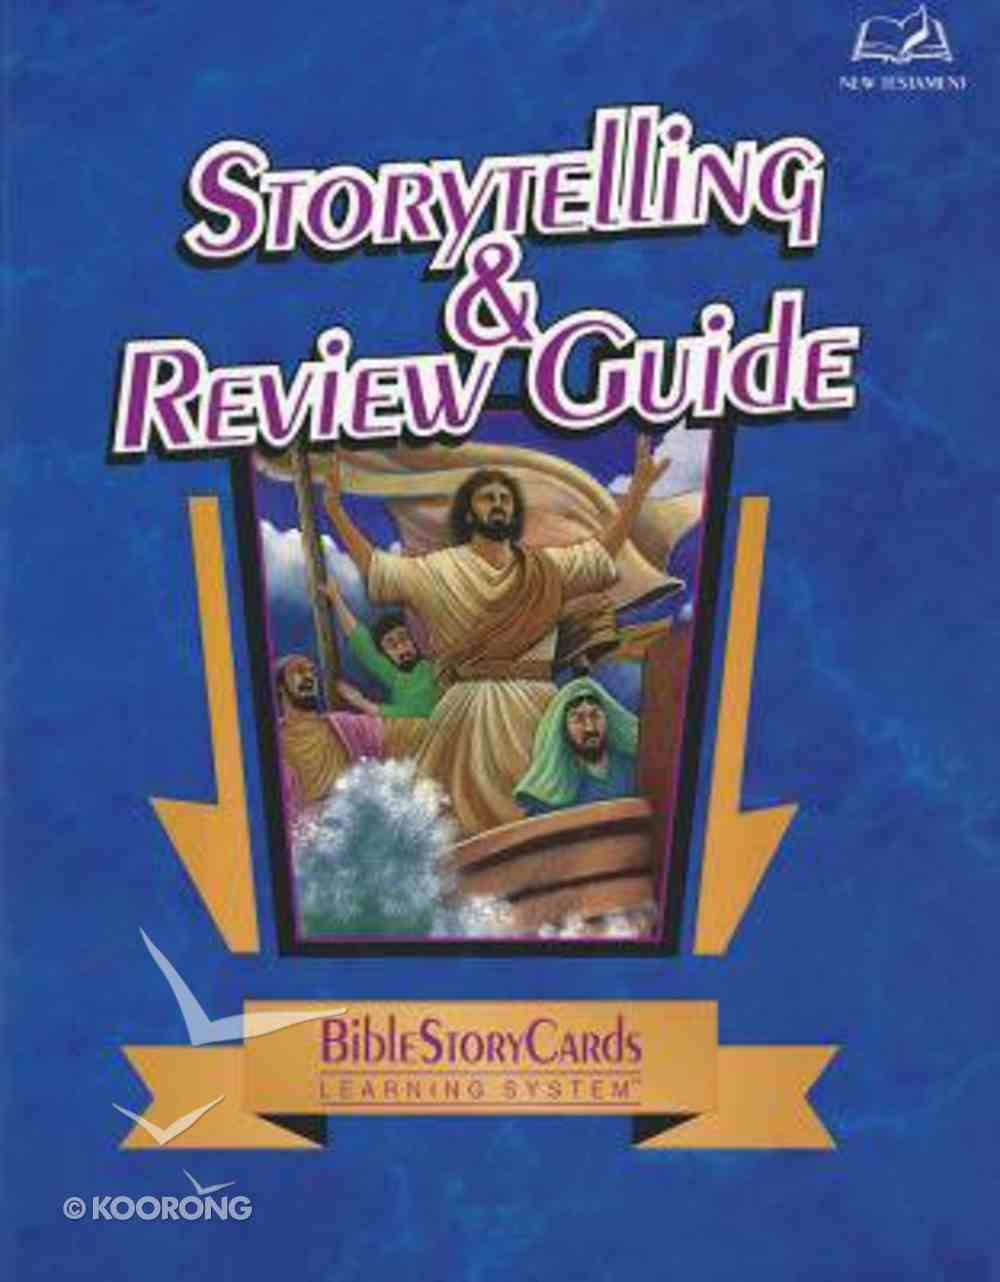 Bible Story Cards: Story Telling and Review Guide New Testament Paperback